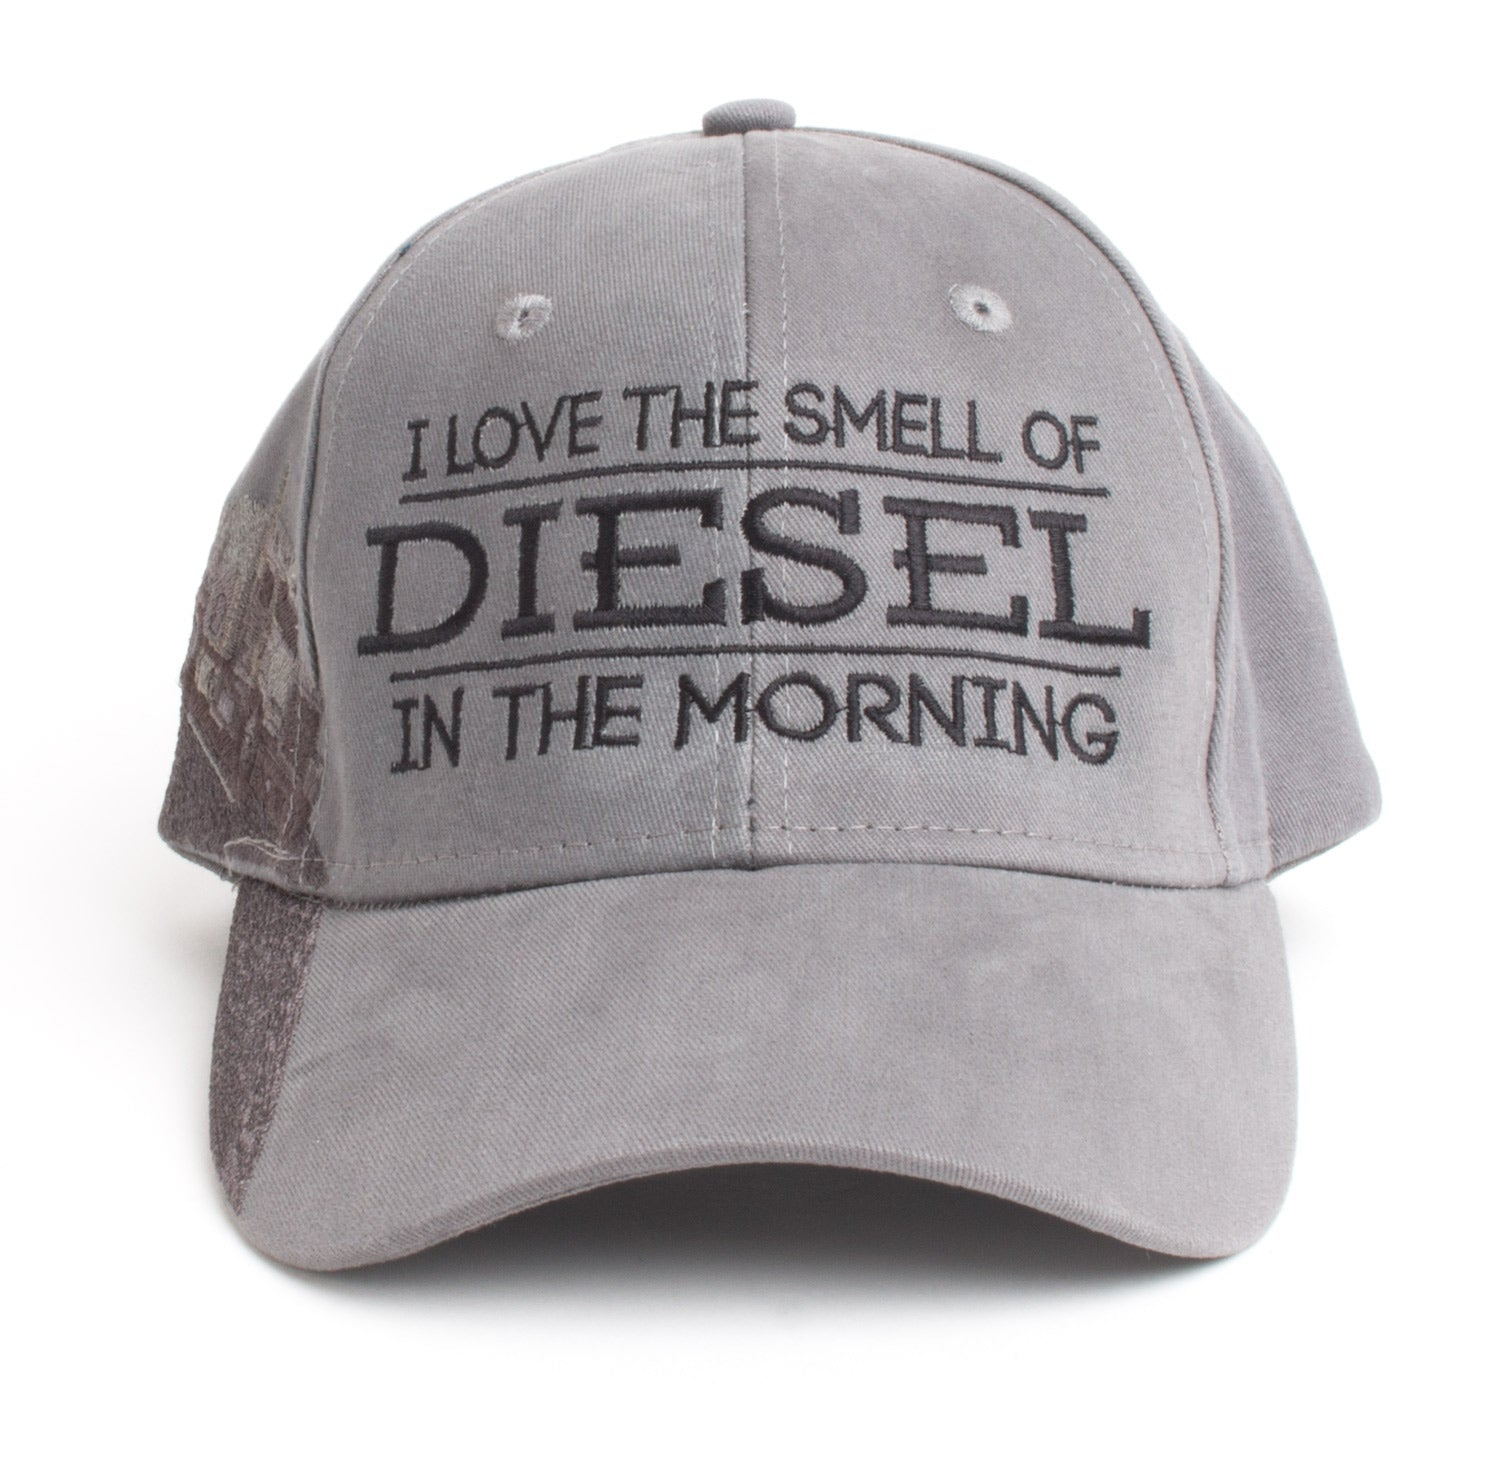 fb96b86a ... Love the Smell of Diesel in the Morning   Truck Driver Hat, Trucker  Baseball Cap ...